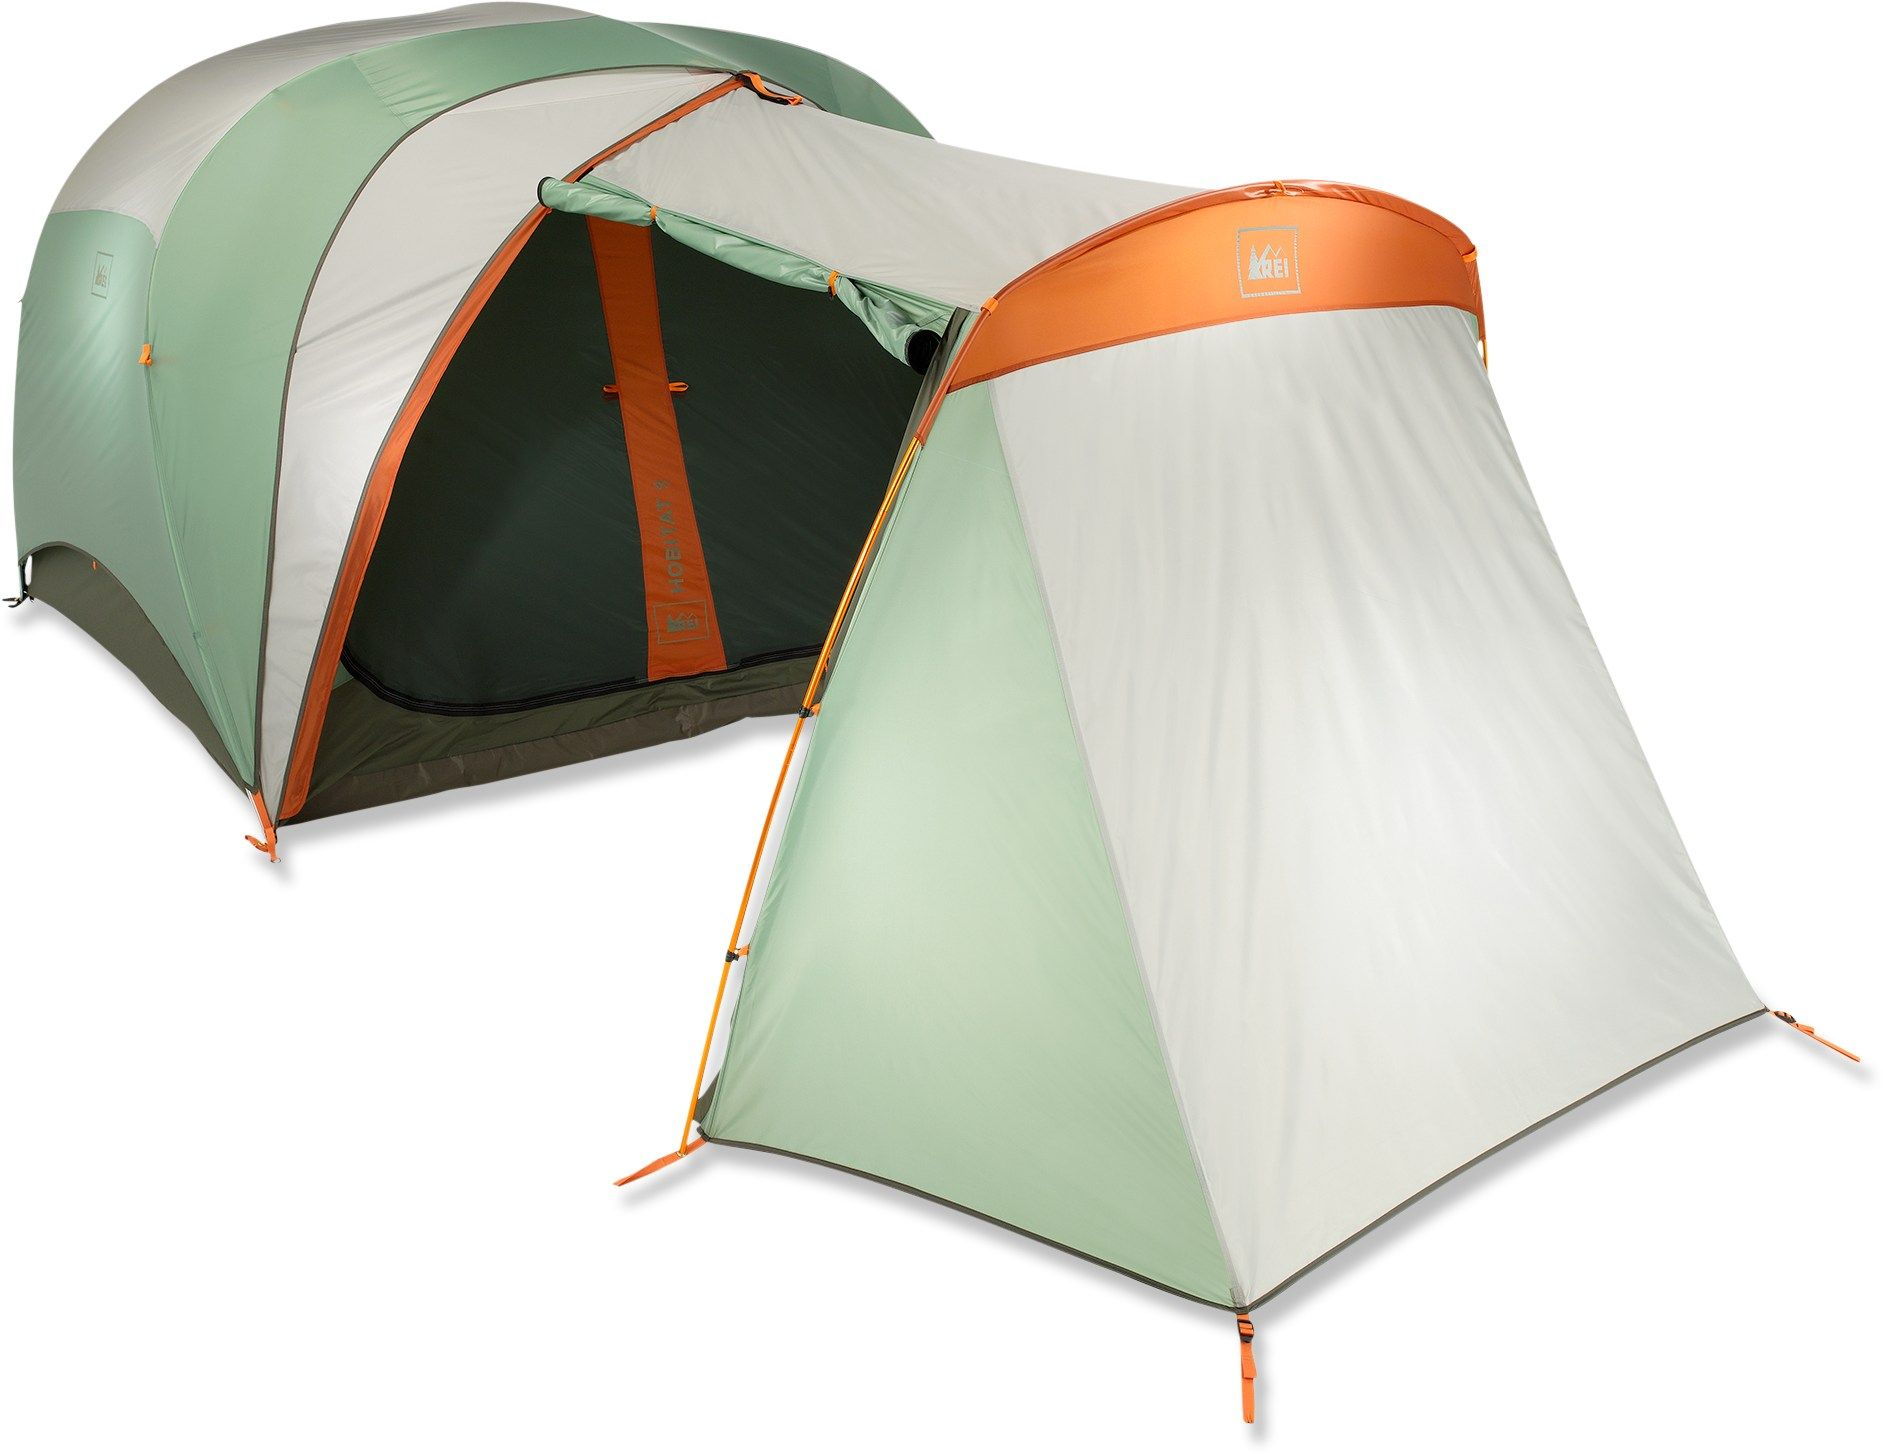 Tent rei sc 1 st for Garage ad st coulomb